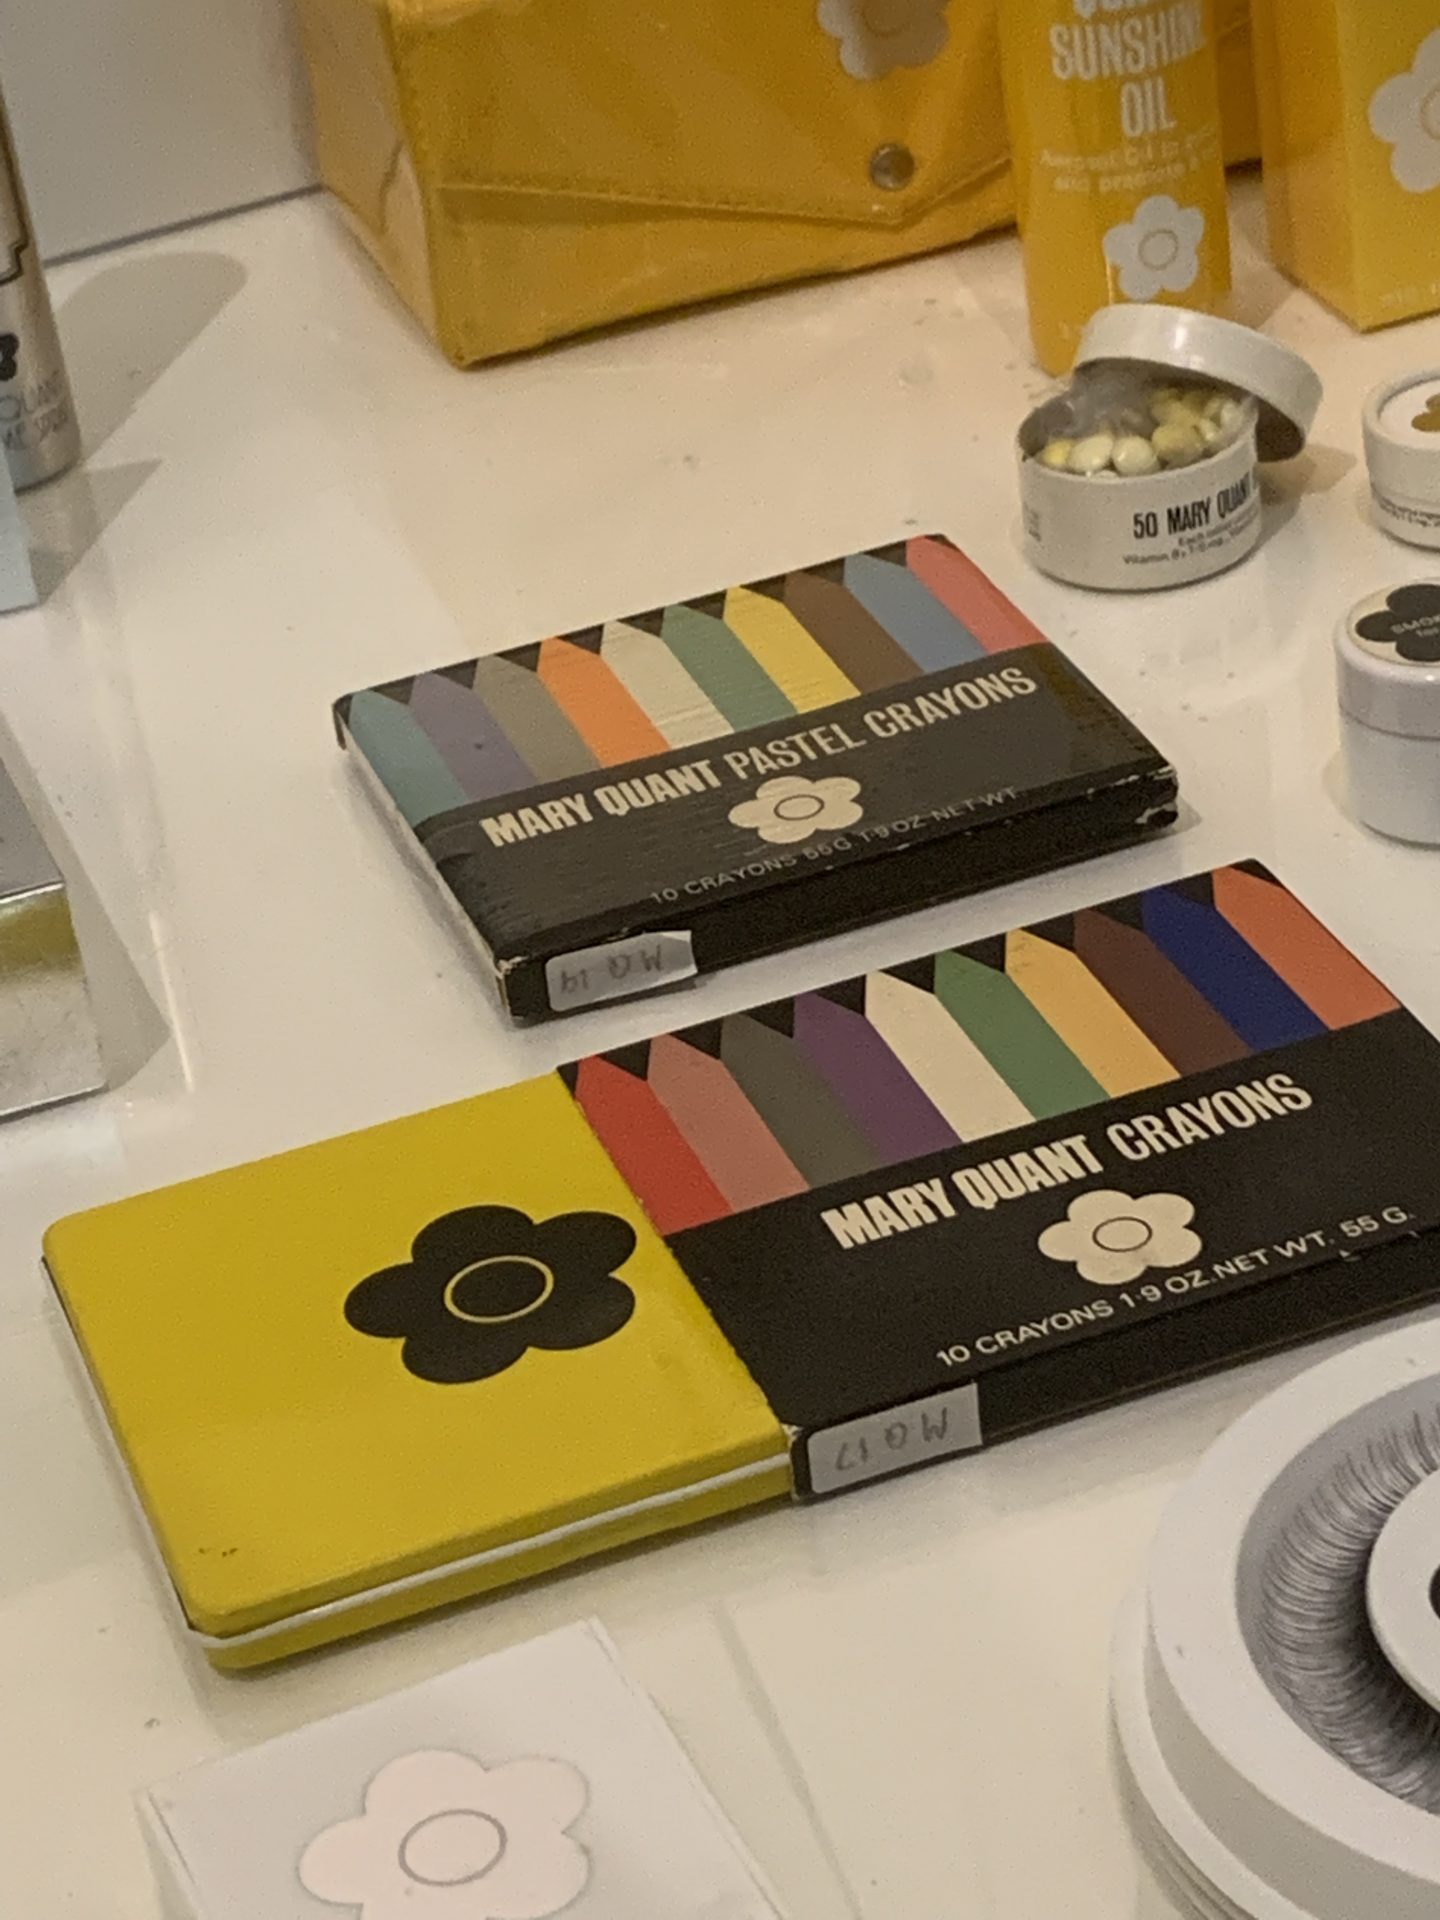 Mary Quant 1960s vintage fashion at the V&A Makeup